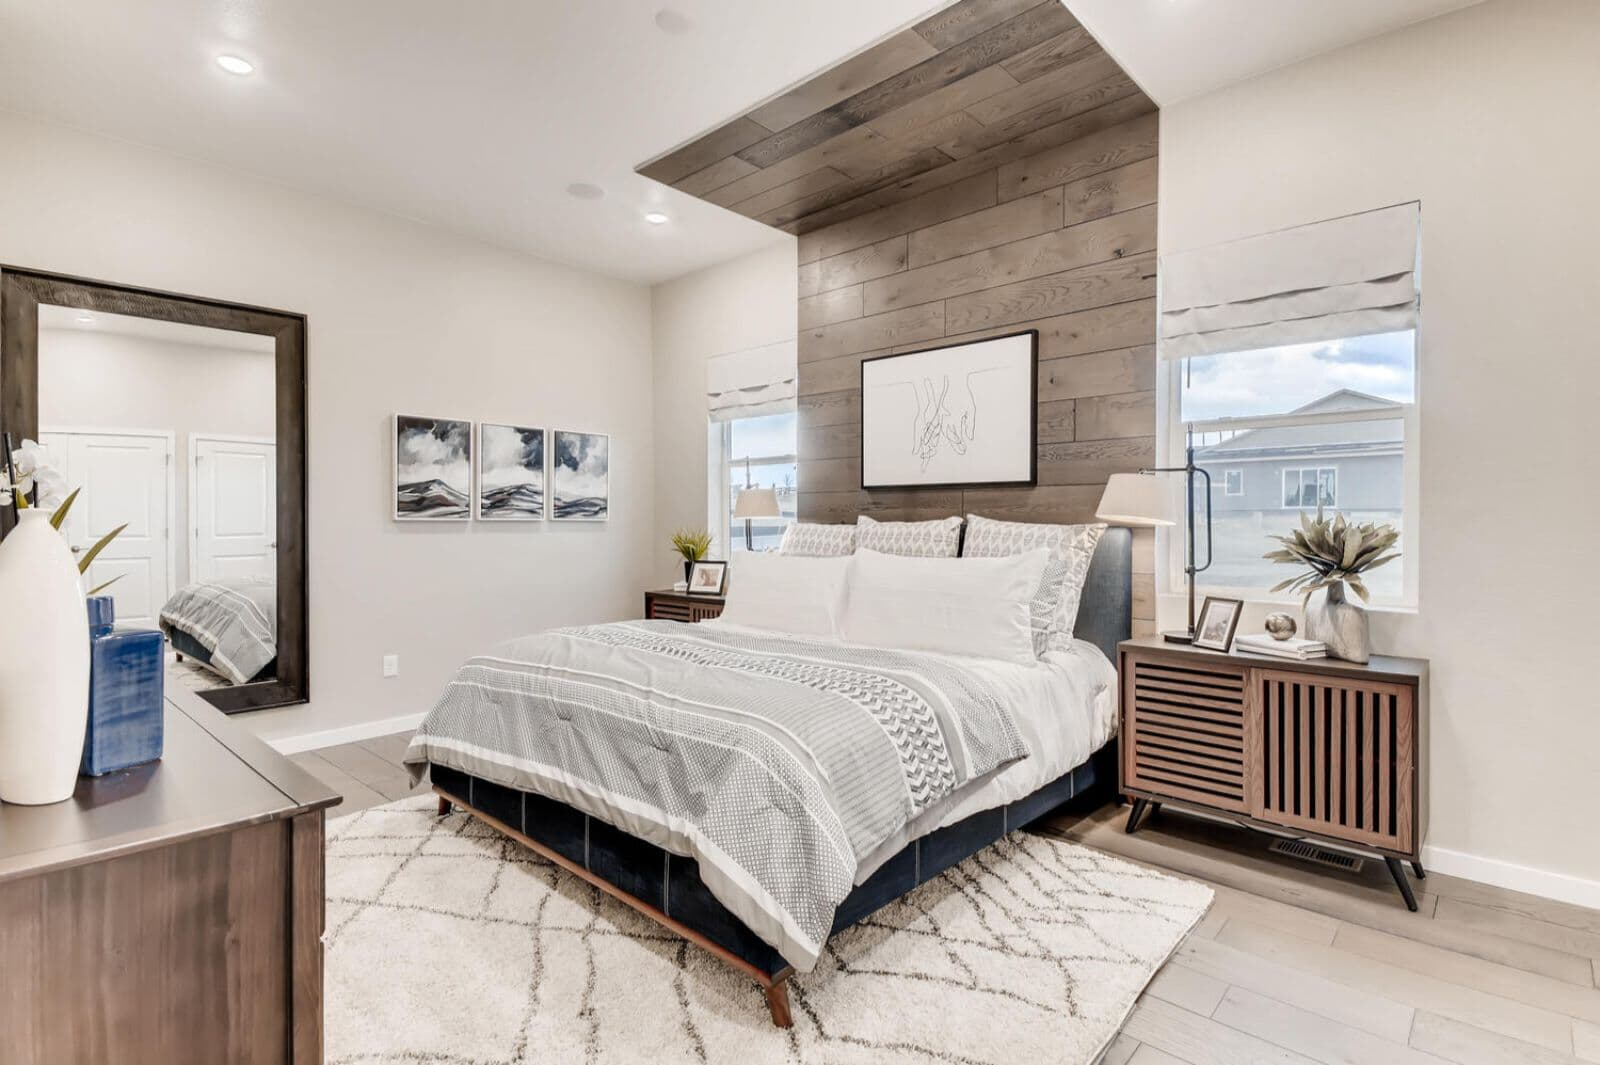 Villa-One-Master-Bedroom-Barefoot-Lakes-Denver-Colorado